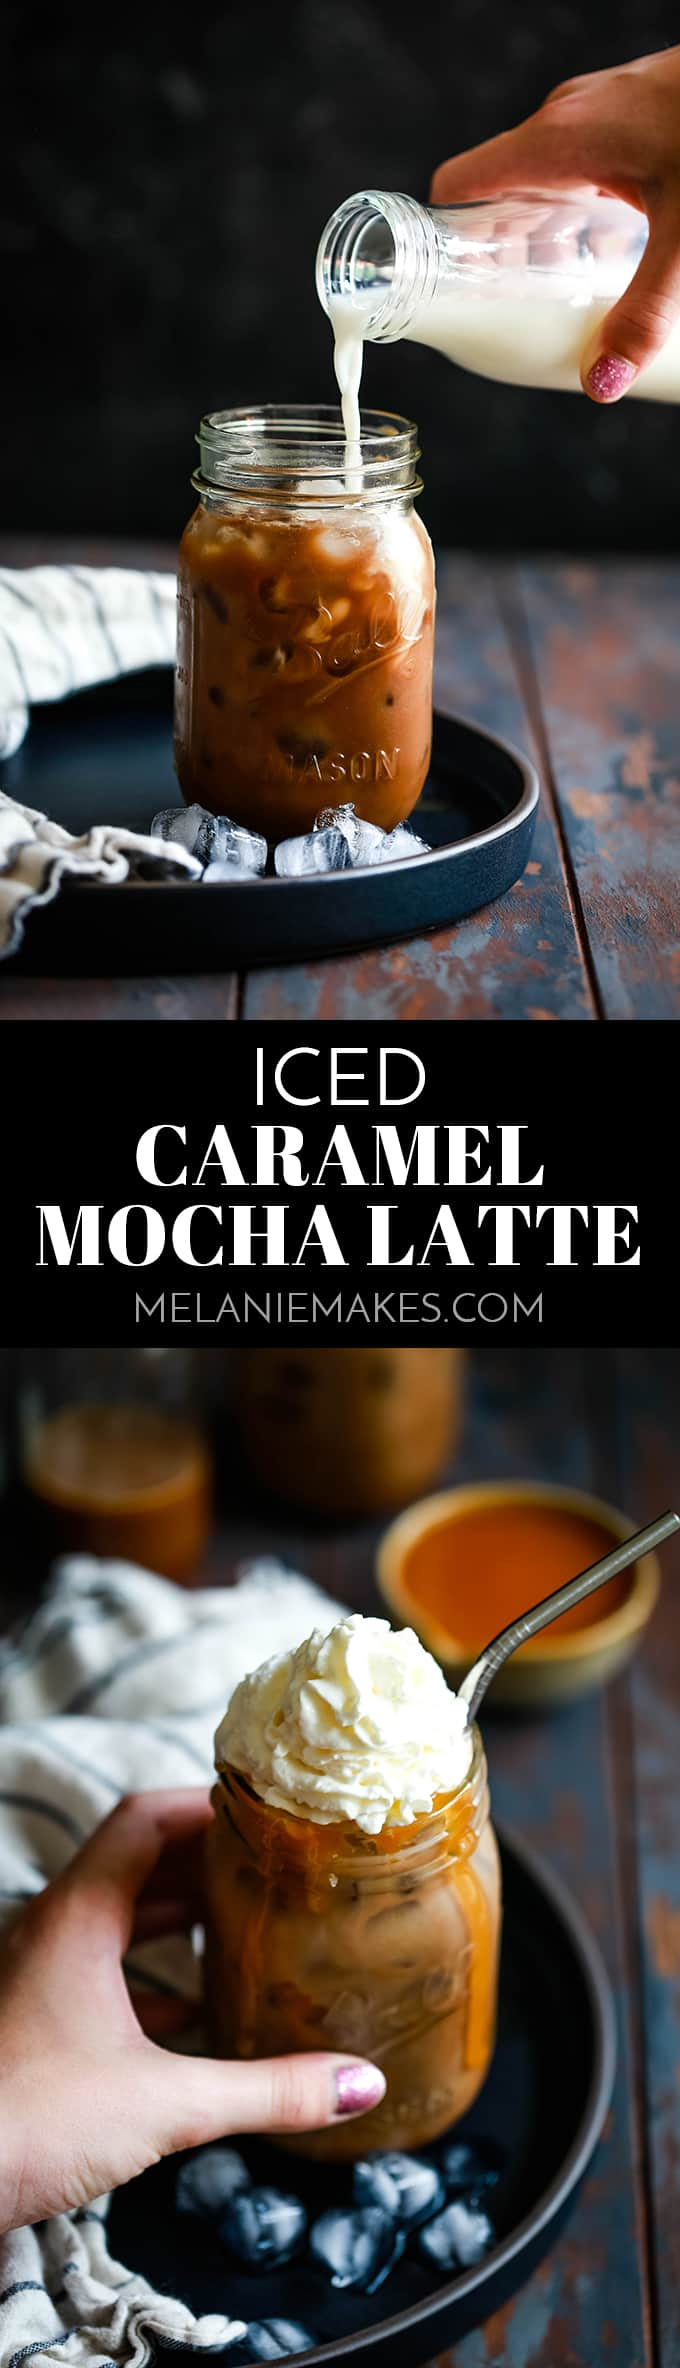 No barista experience required! With just four ingredients, you can create a delicious and less expensive Iced Caramel Mocha Latte at home. #coffee #icedcoffee #caramel #mocha #latte #drinks #easyrecipe